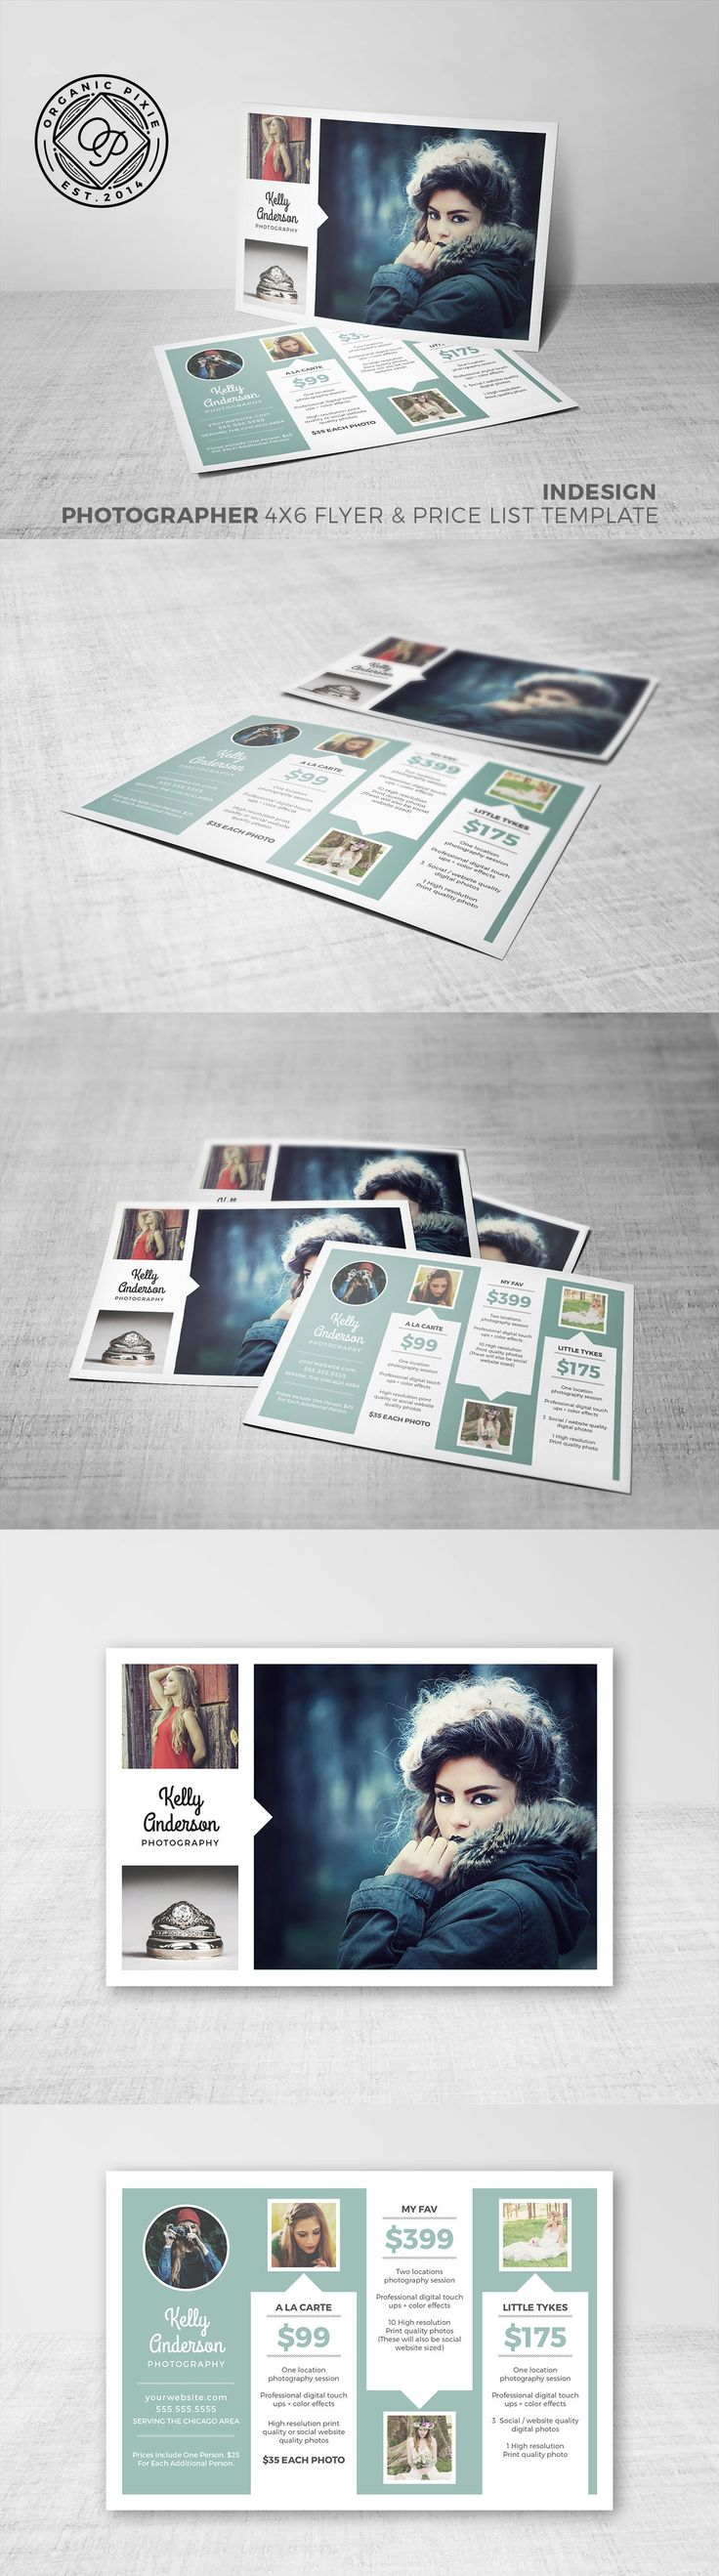 This is an easy to use photography postcard design or flyer template in InDesign. Included are all the photos that are FREE to use downloaded from pixabay.com with no restriction. It is easy to change the color palette and the fo                                                                                                                                                                                 More